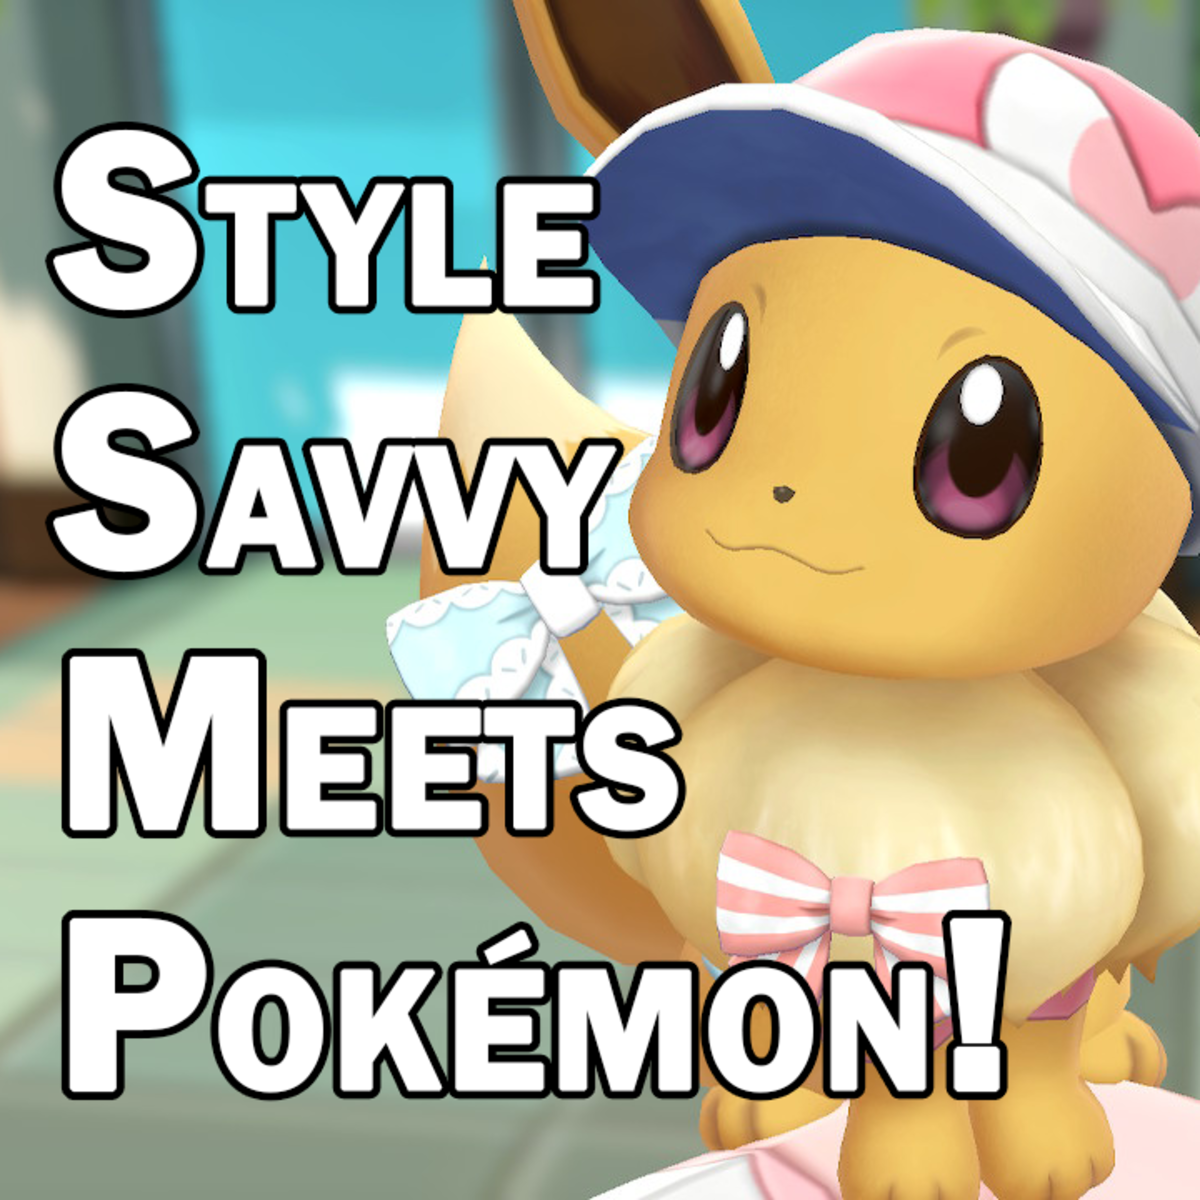 We need a Pokemon/Style Savvy crossover game on the Nintendo Switch!